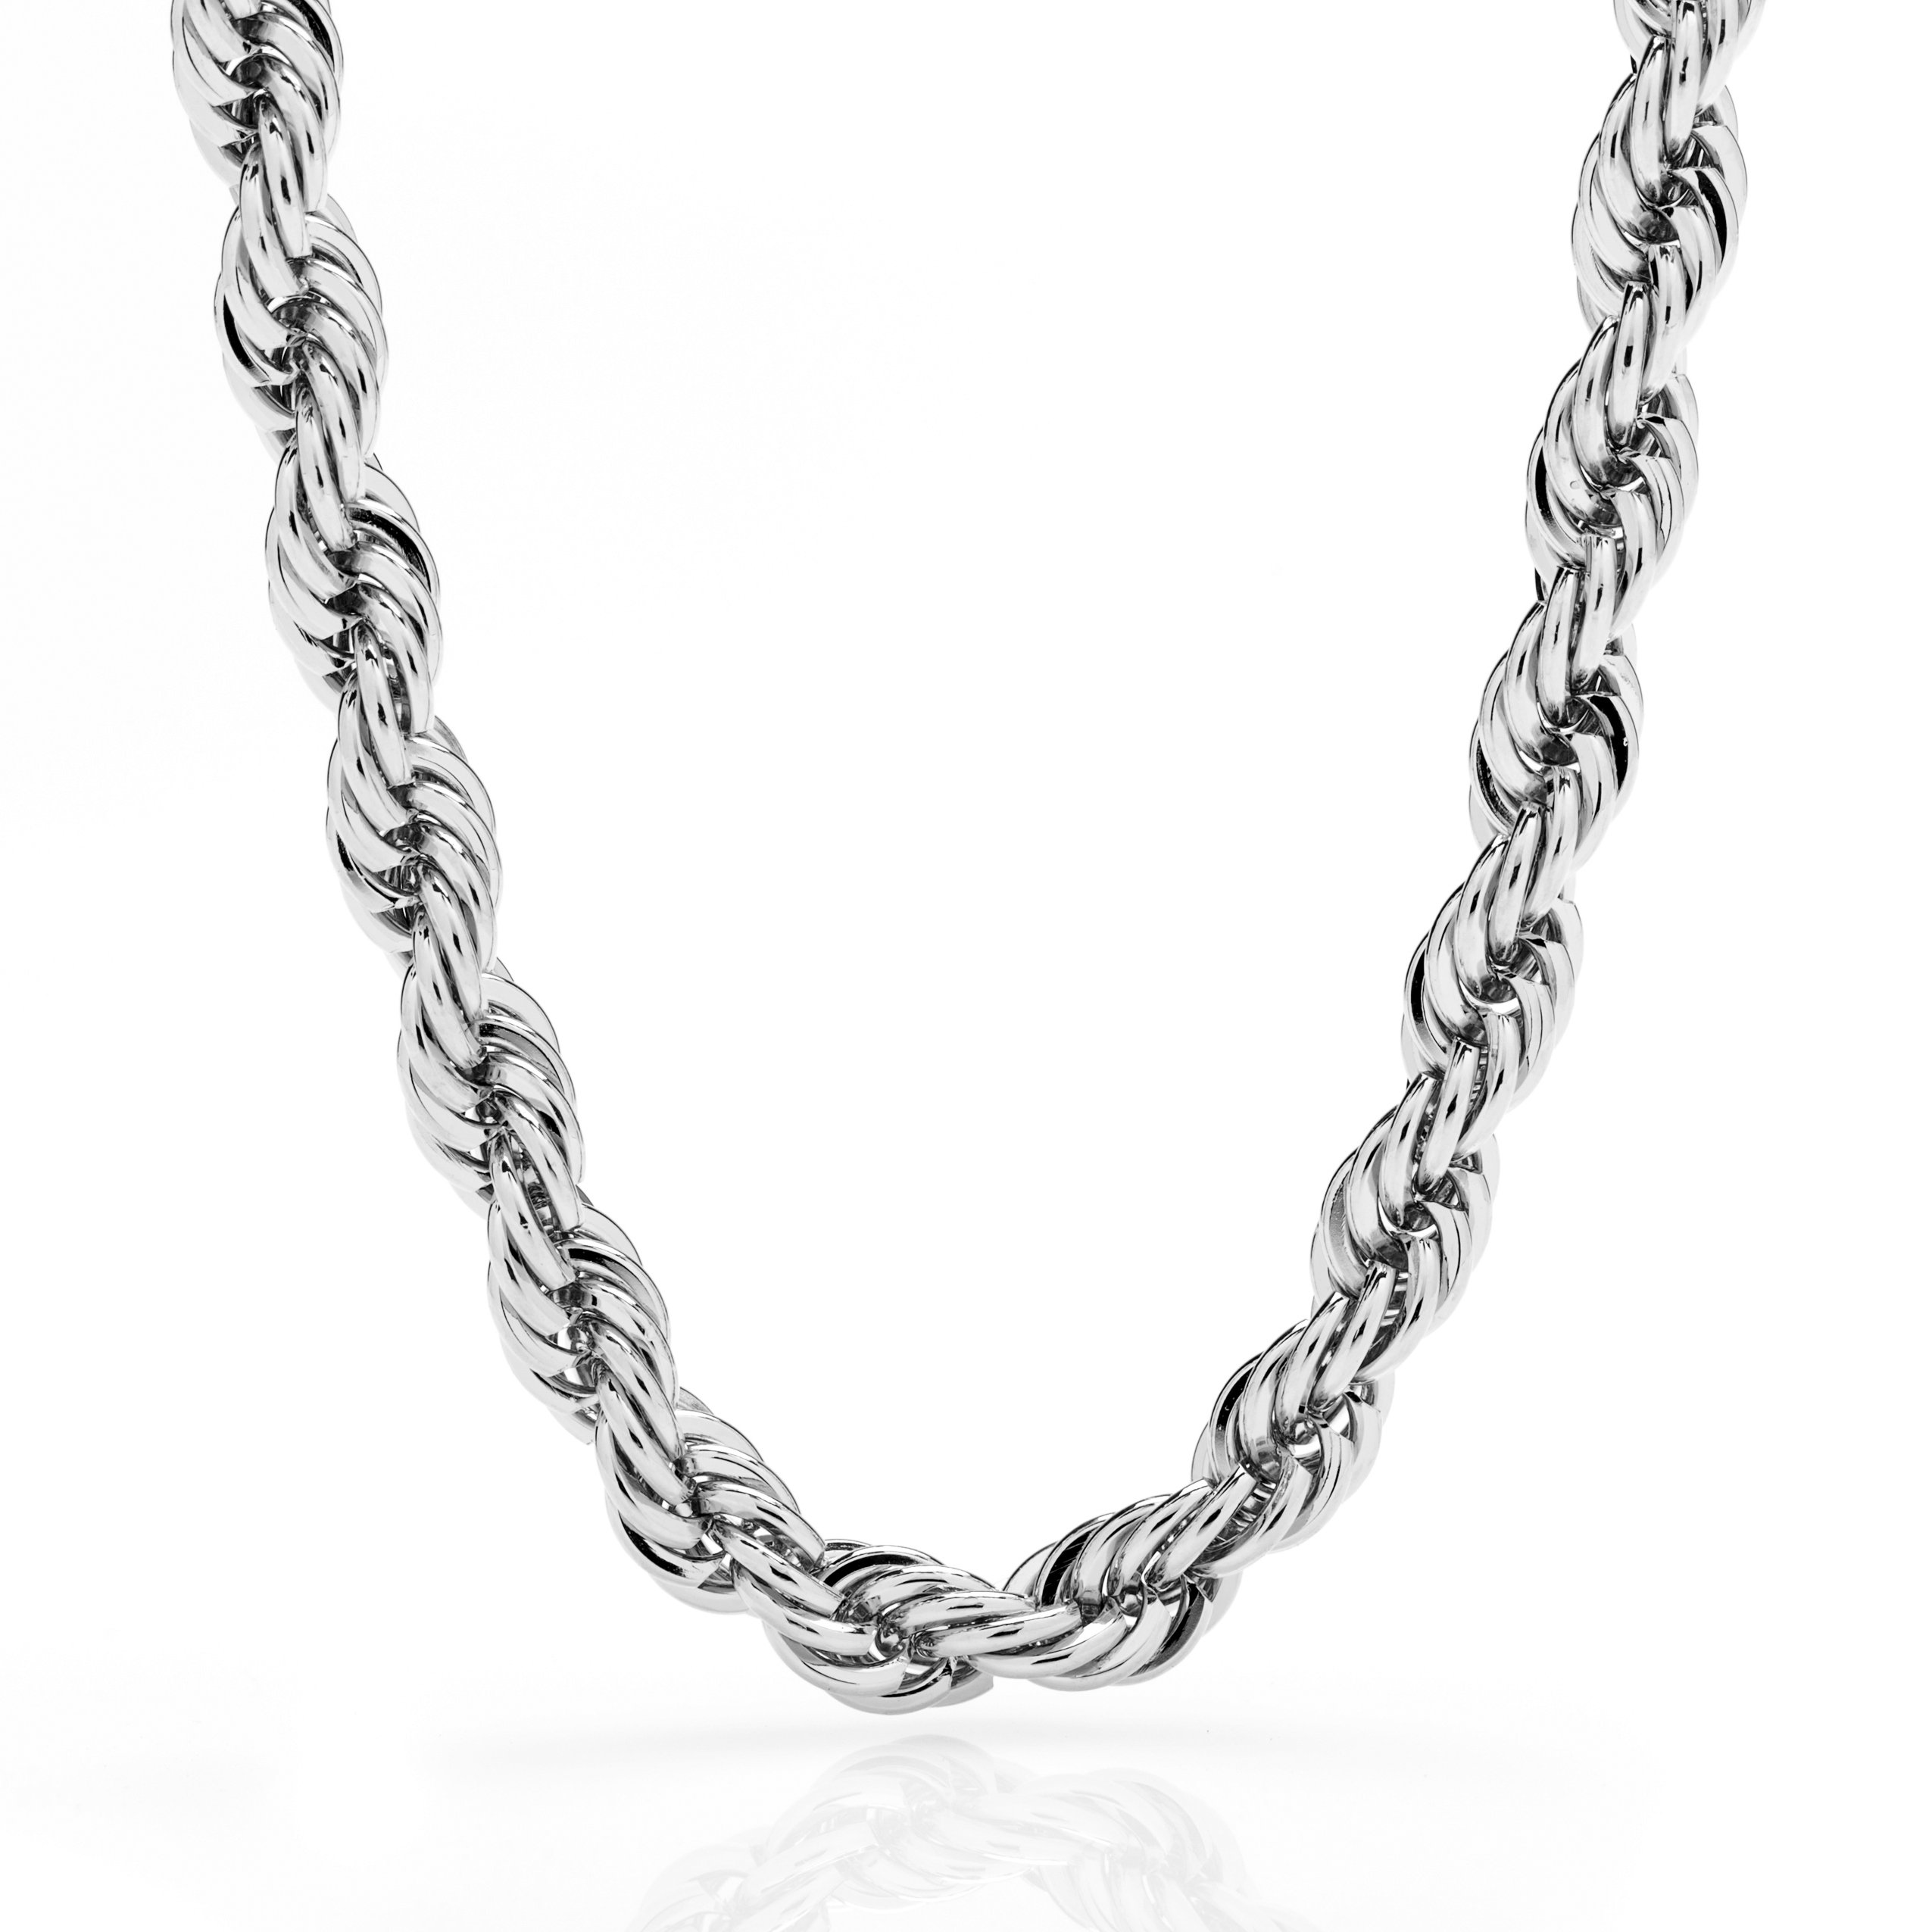 Lifetime Jewelry Rope Chain 7MM, 24K Diamond Cut Fashion Jewelry Necklaces in Yellow or White Gold Over Semi Precious Metals, Hip Hop or Classic, Comes with Box or Pouch, Long 36 Inches